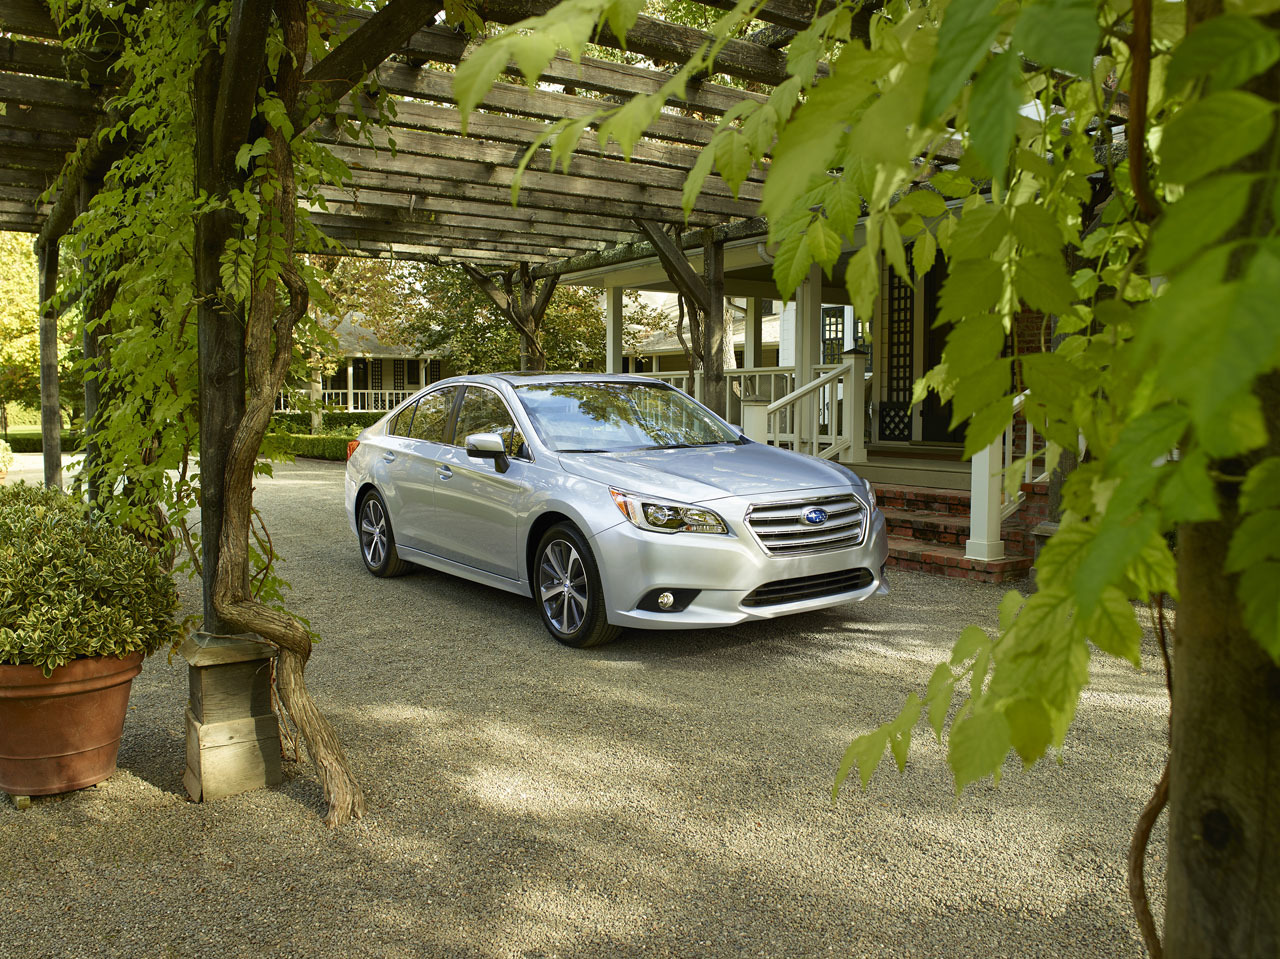 The 2015 Subaru Legacy will get up to 36mpg